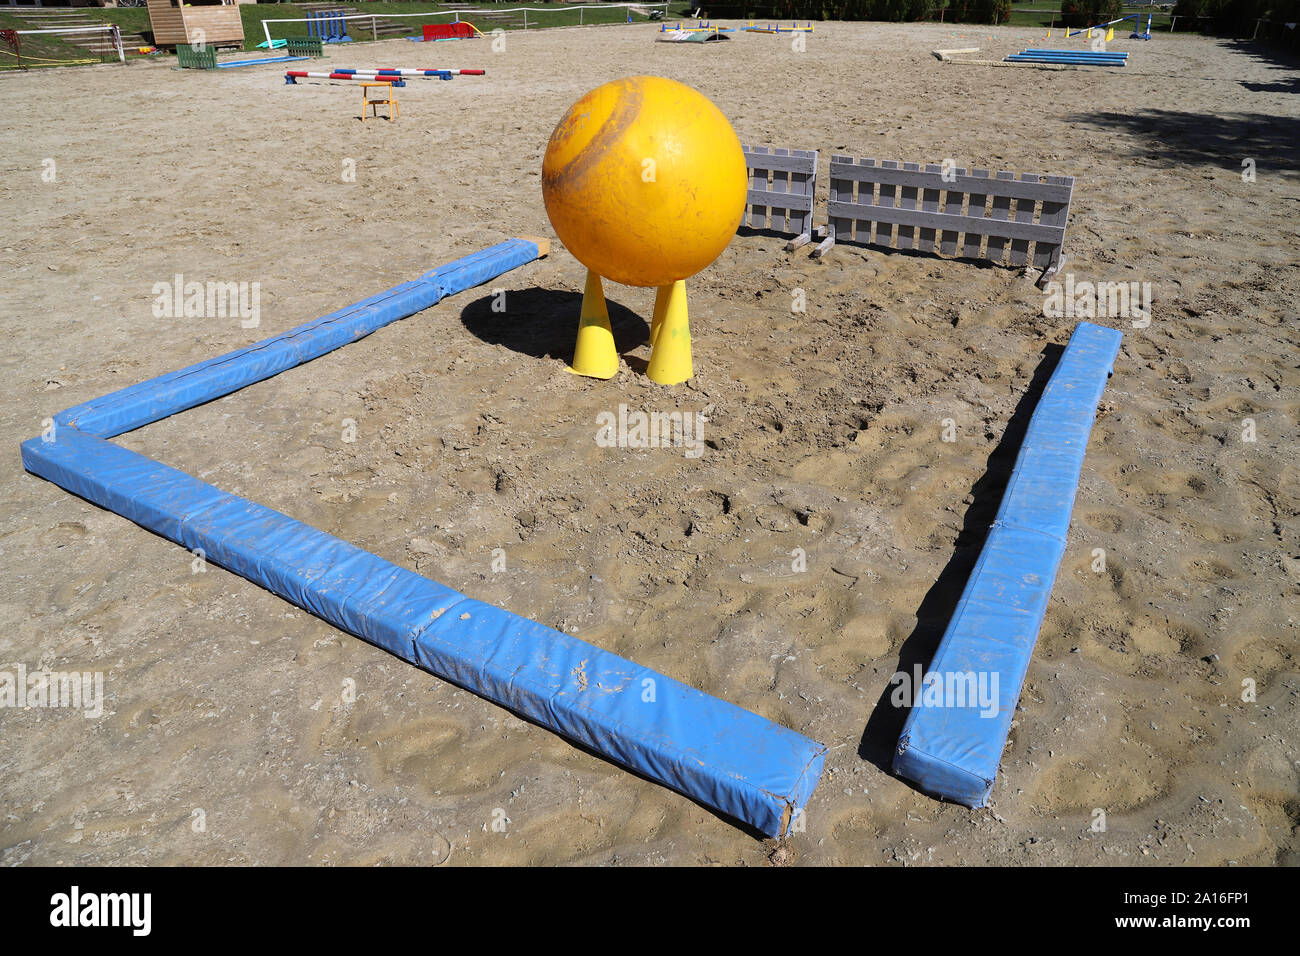 Obstacles for horses in a riding school.Various colorful obstacles for equestrian training Stock Photo